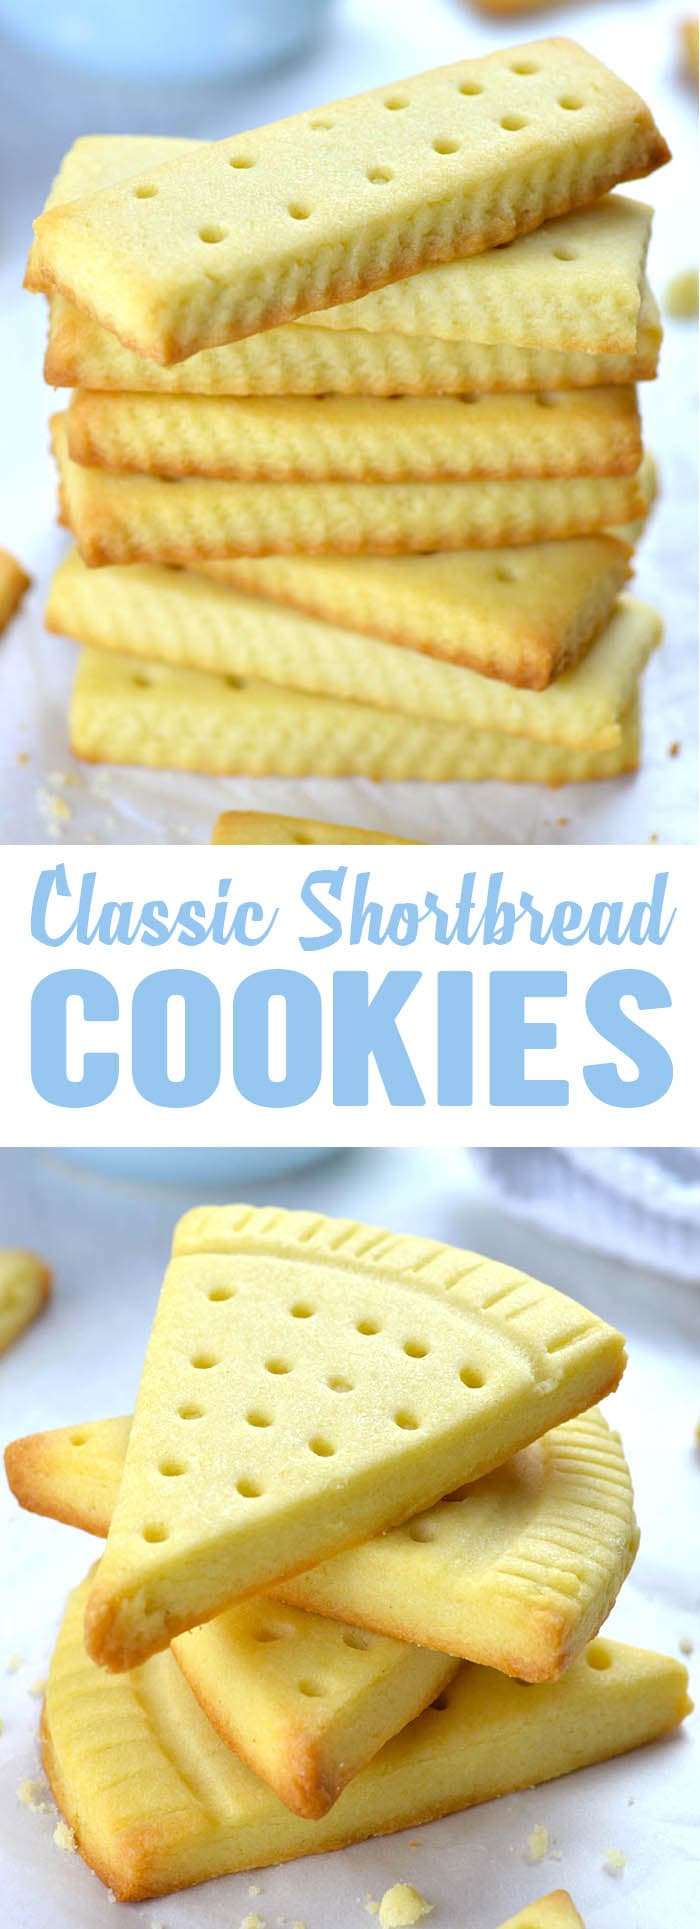 Classic shortbread cookies recipe uses only three ingredients: salted butter, powdered sugar and flour. If you add a hint of vanilla extract, you'll have the best shortbread cookies ever - Easy Shortbread Cookies